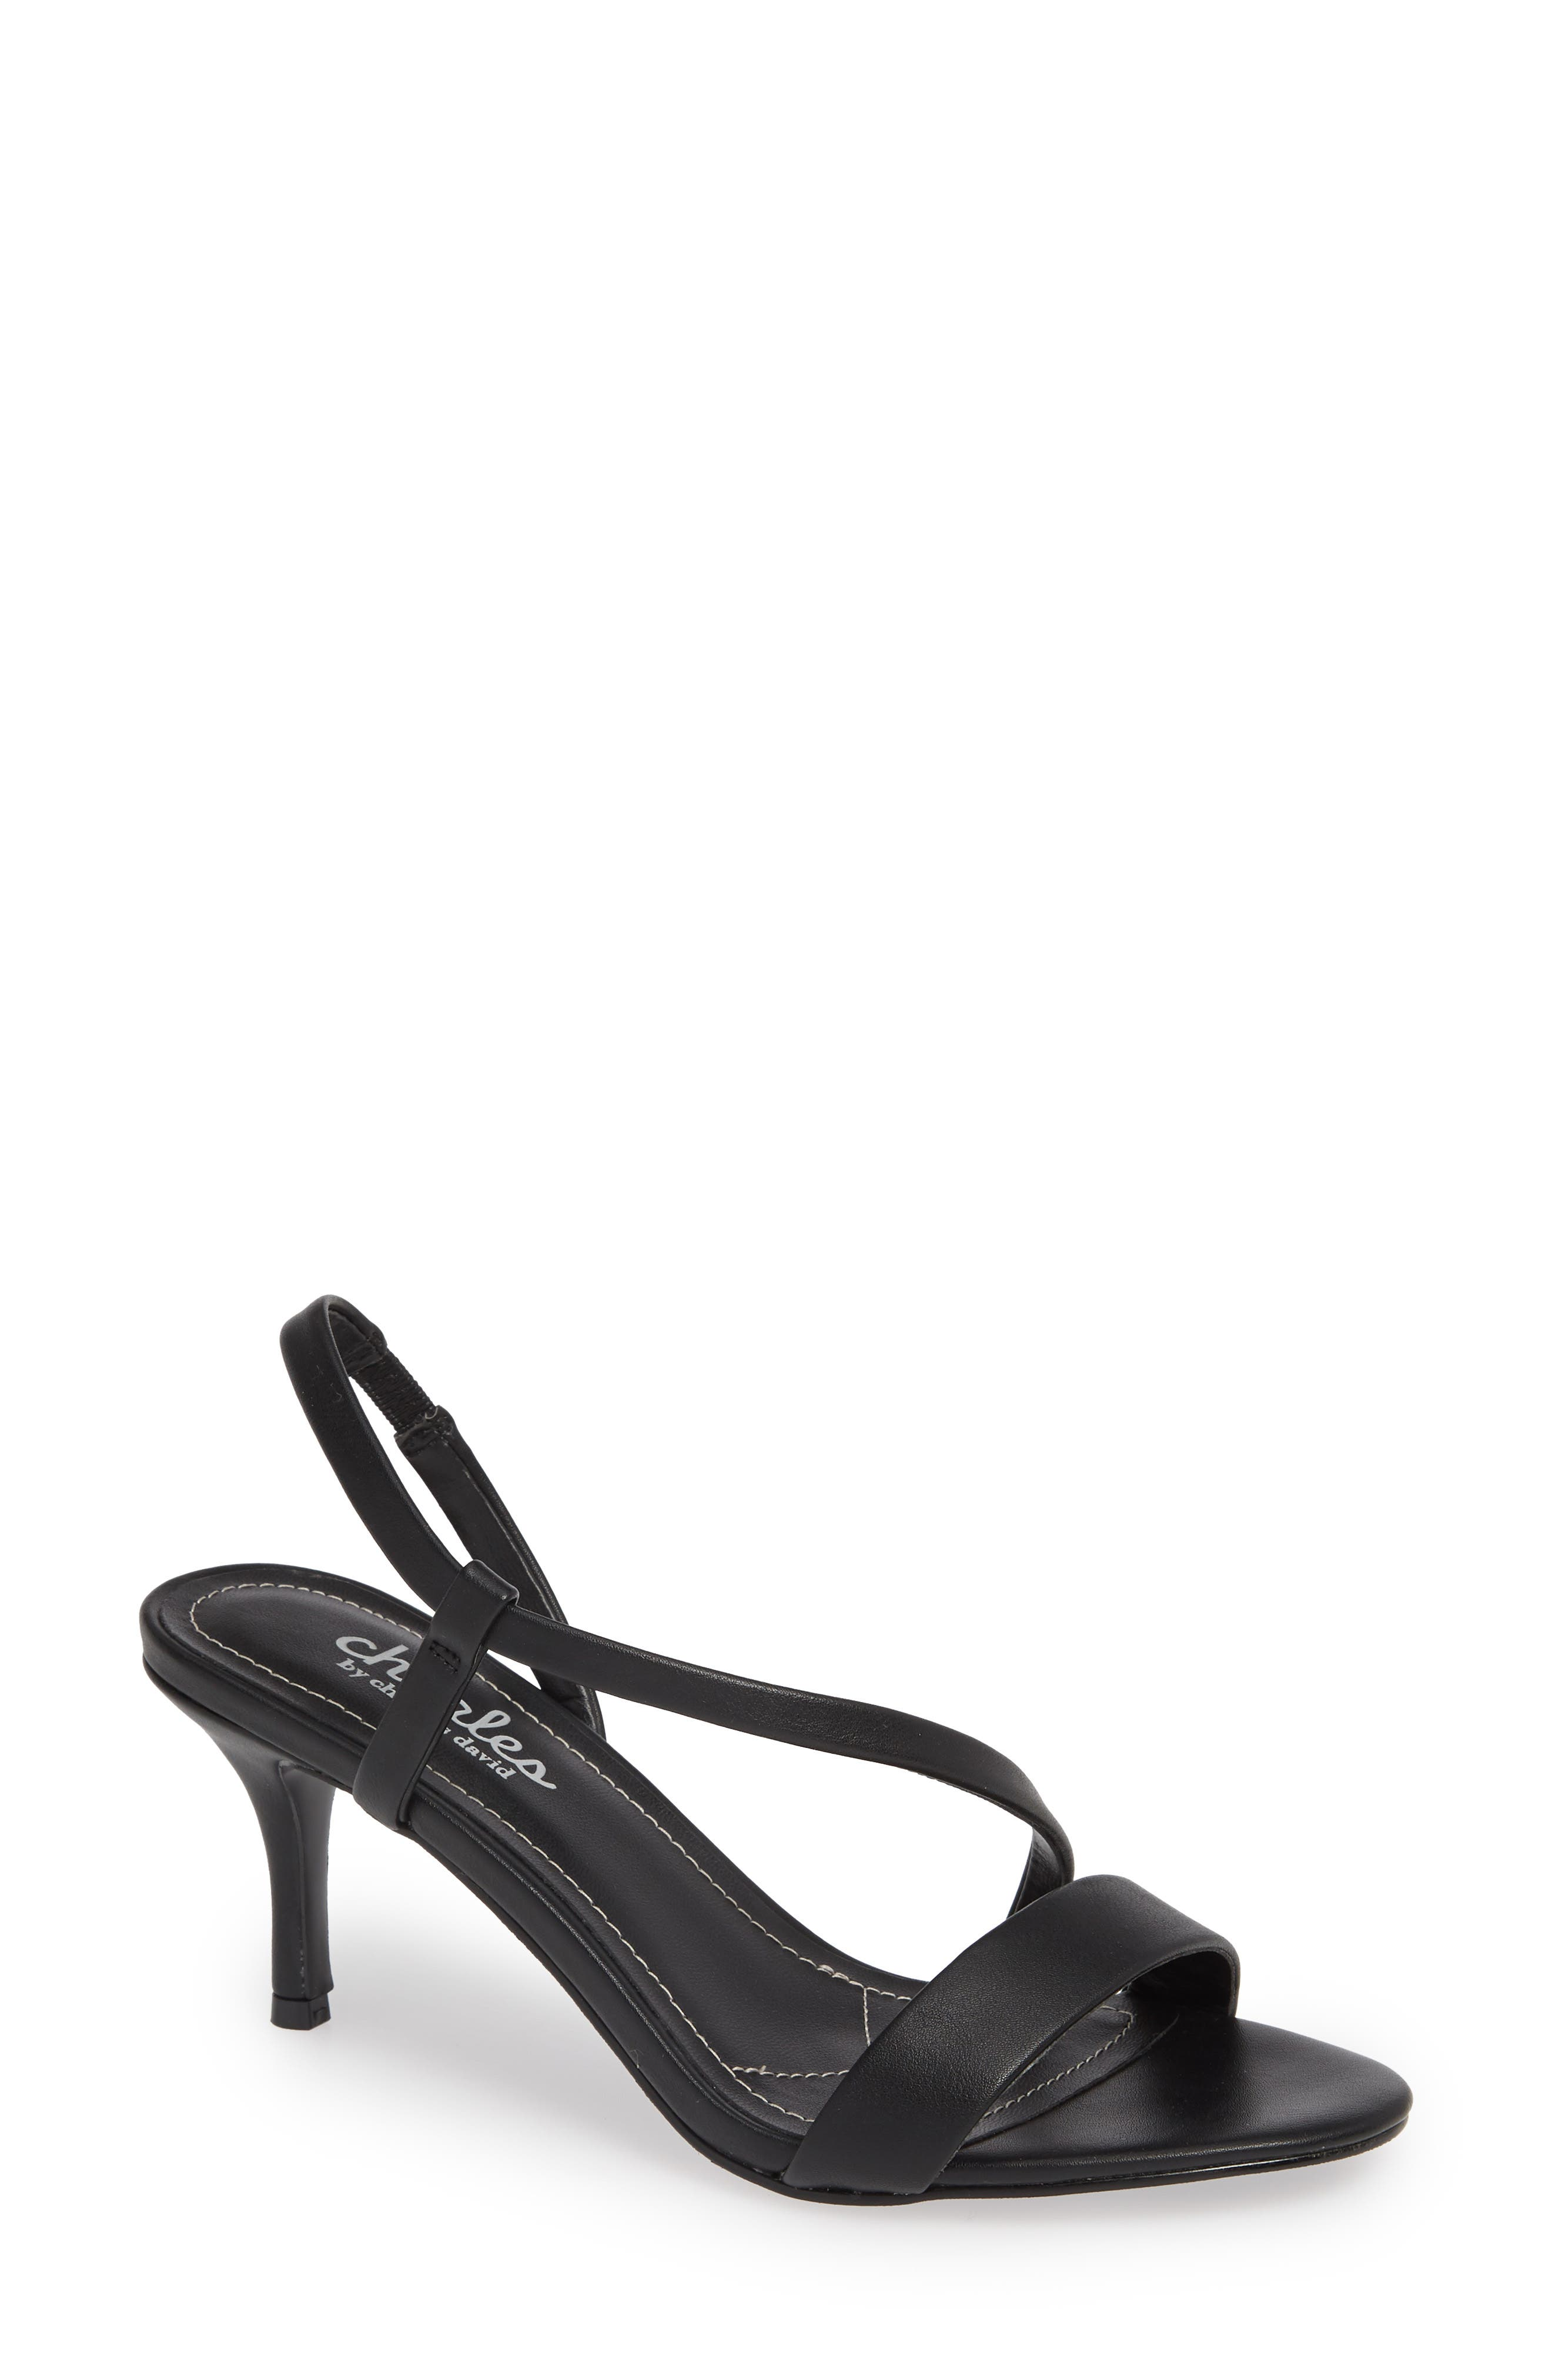 CHARLES BY CHARLES DAVID Bermuda Asymmetrical Sandal, Main, color, BLACK FAUX LEATHER